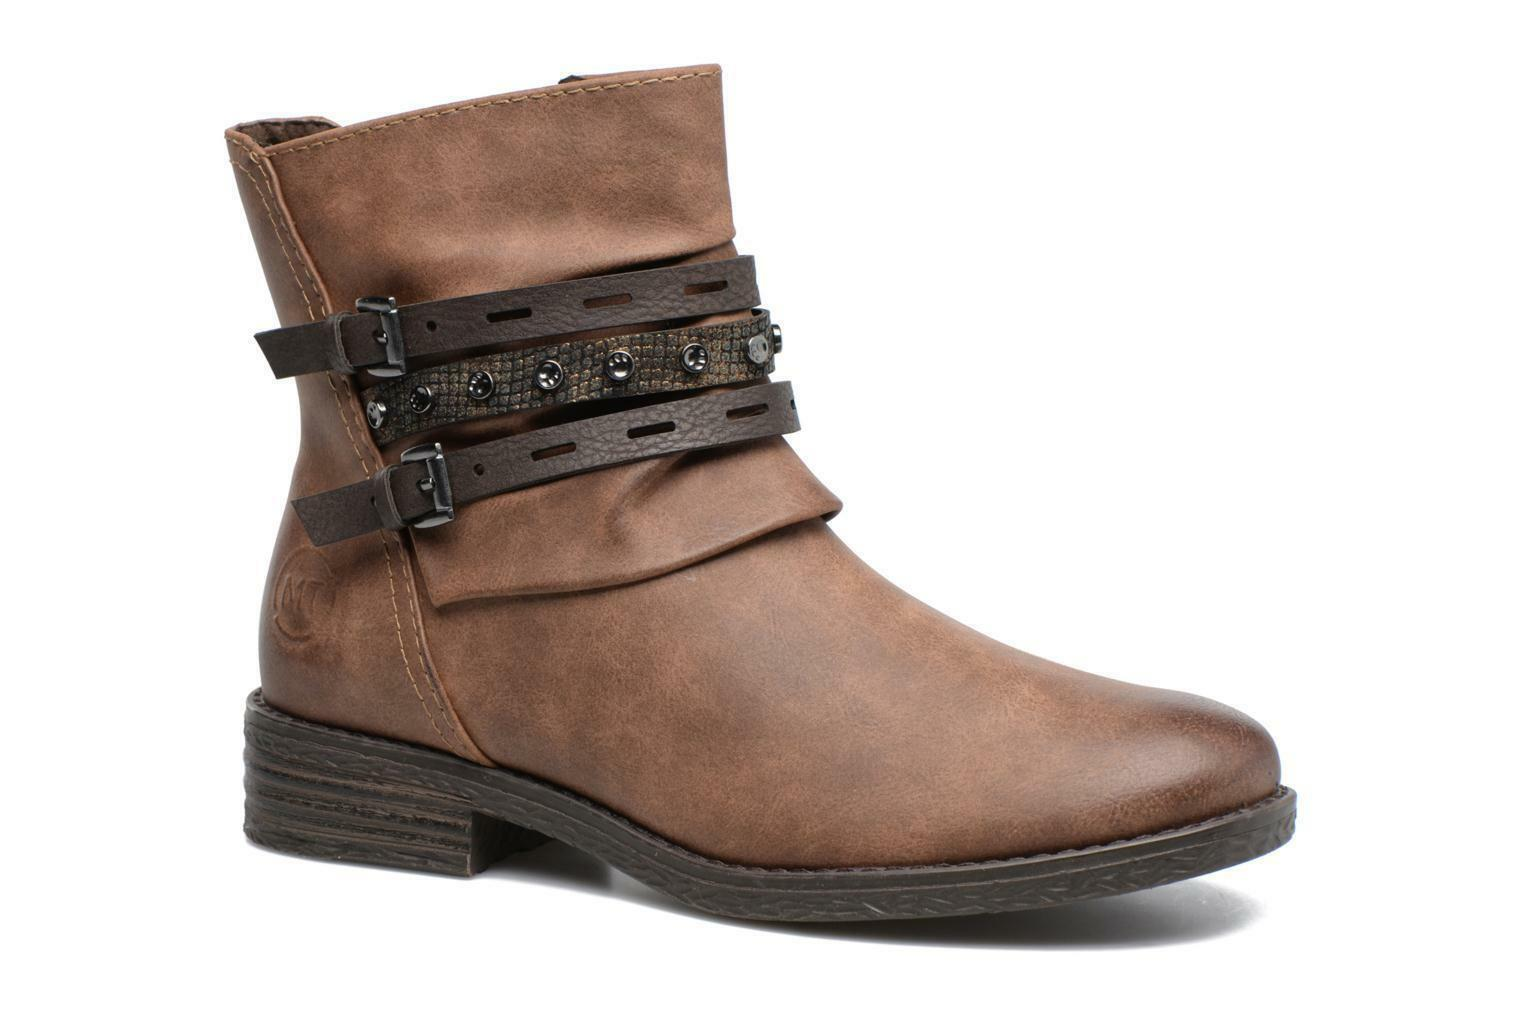 NEW BOXED PILI - WOMEN'S MARCO TOZZI PILI BOXED ZIP-UP ANKLE Stiefel BROWN UK 6 EU 39 bc3a7d